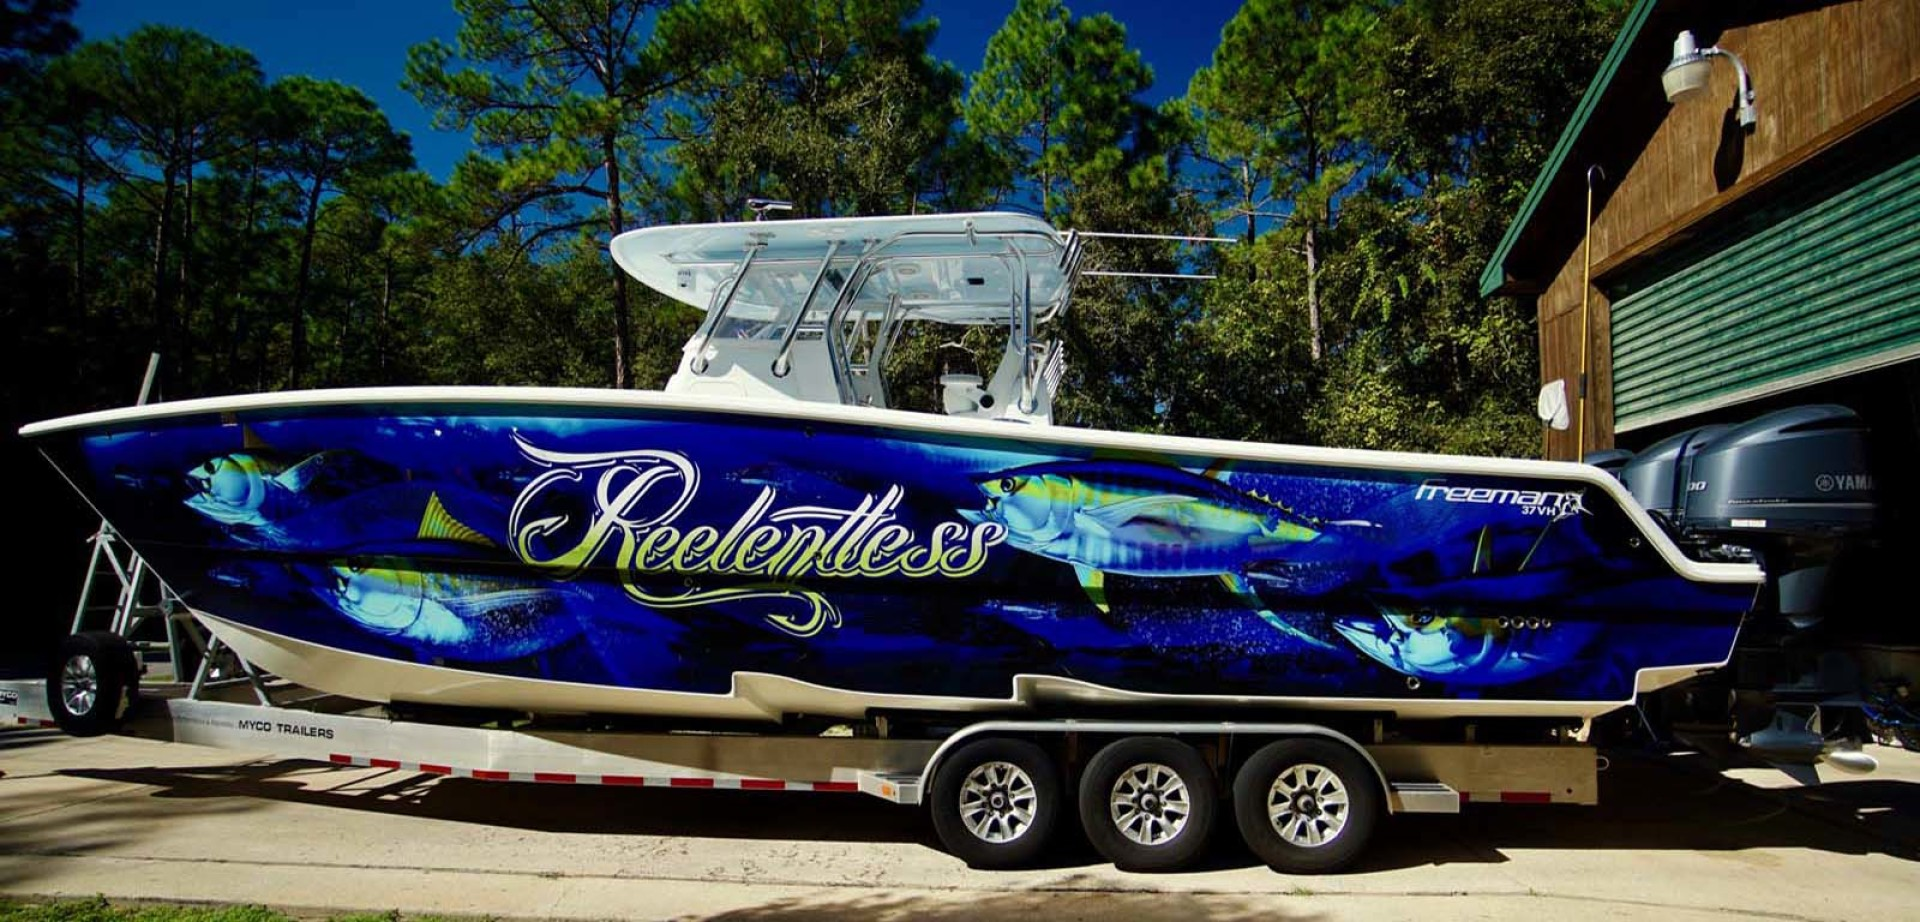 Freeman-37 VH 2018-Reelentless Dauphin Island-Alabama-United States-Main Profile on Trailer-1254762 | Thumbnail